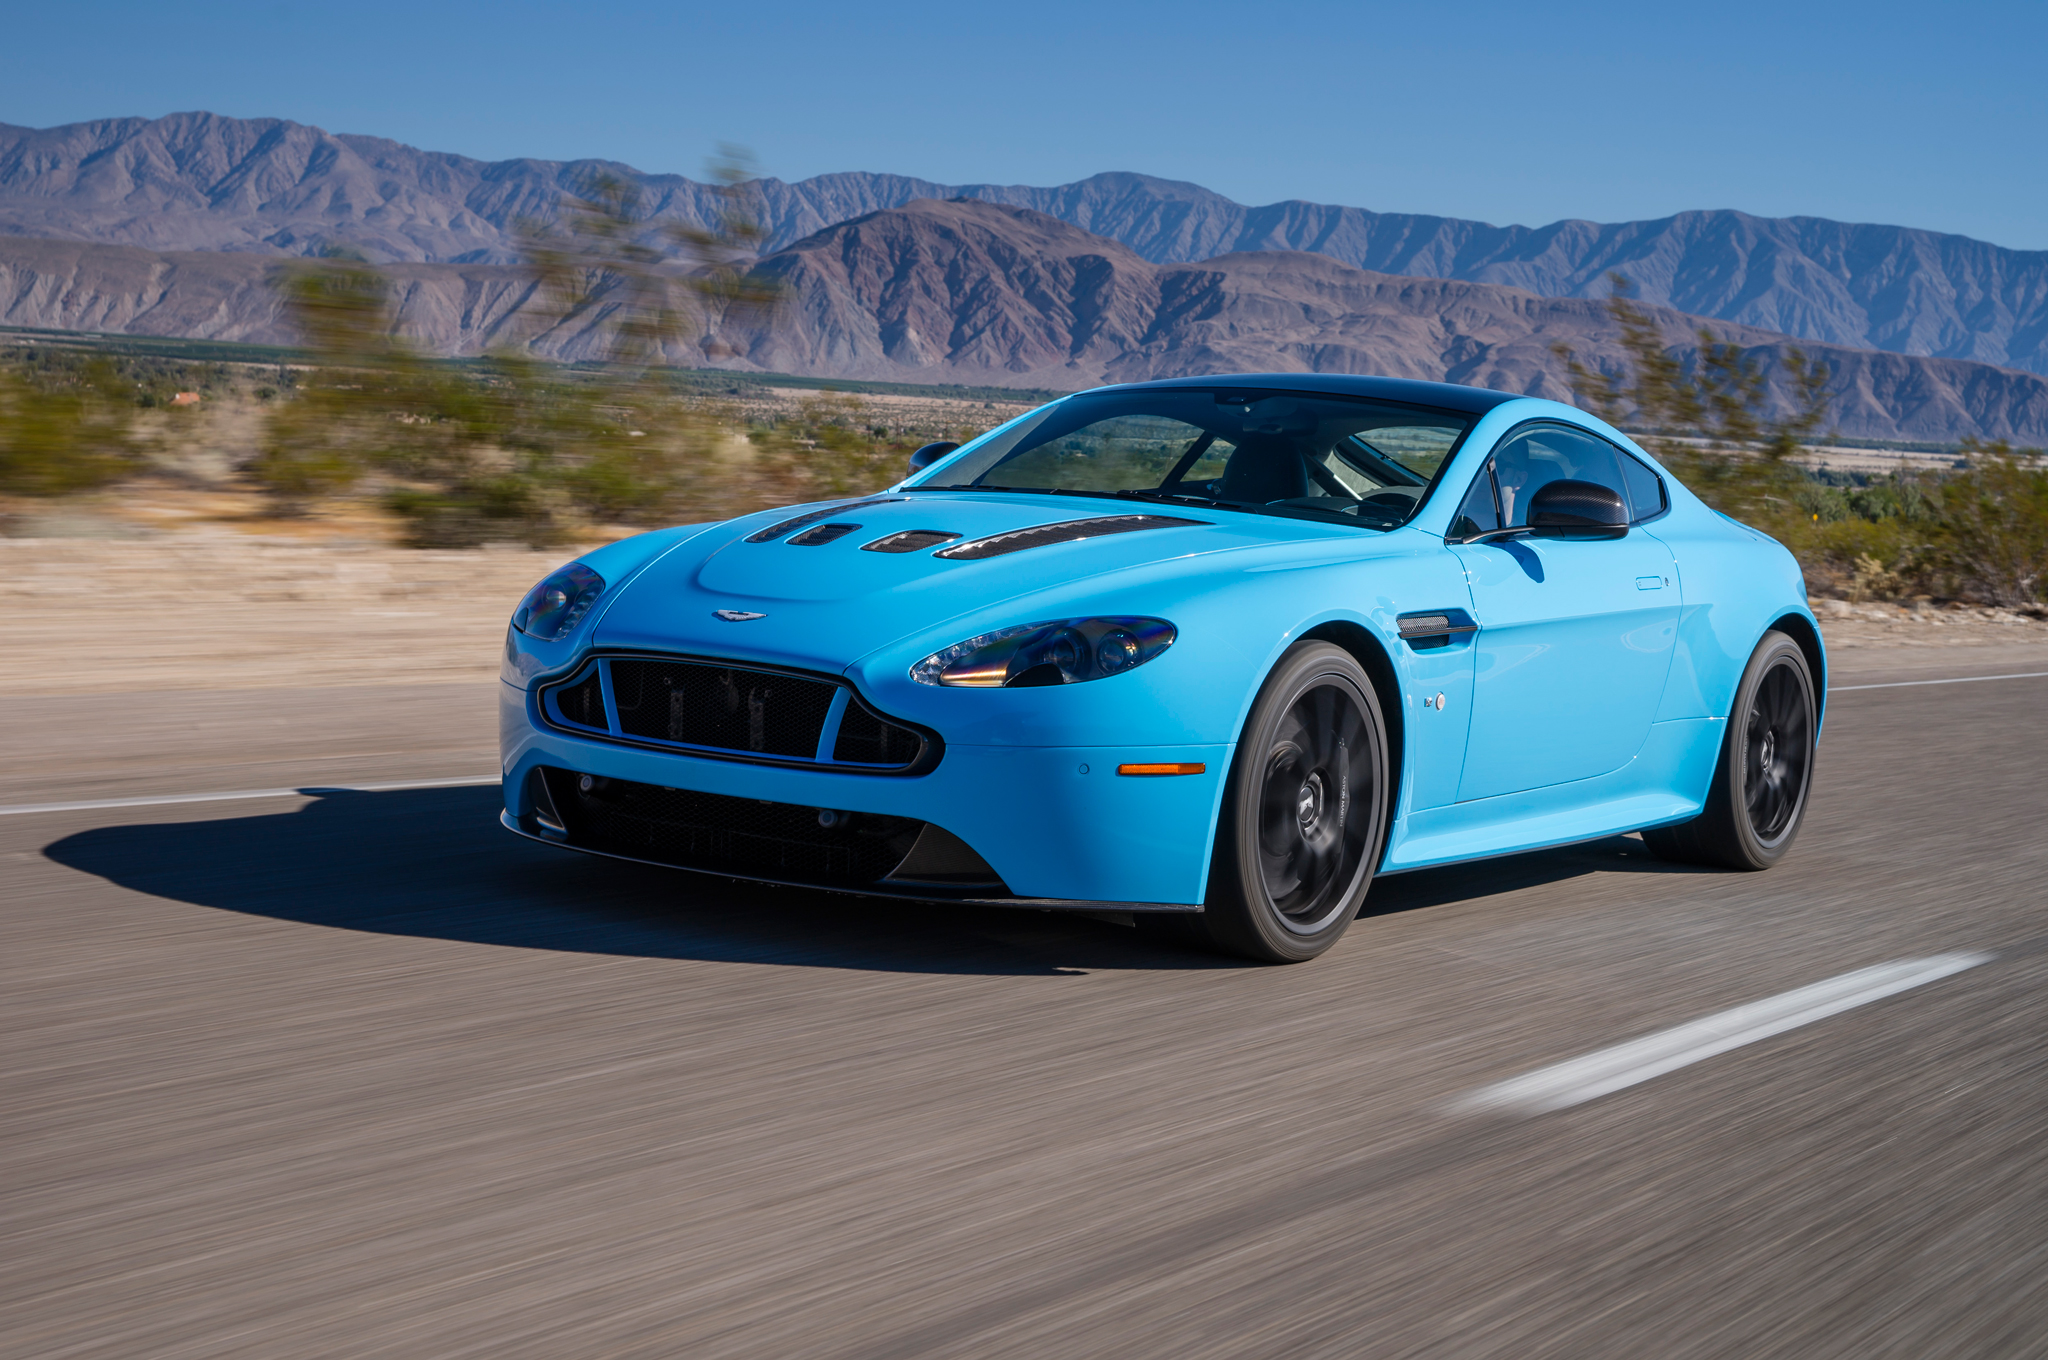 2015 aston martin v12 vantage s first drive - motortrend